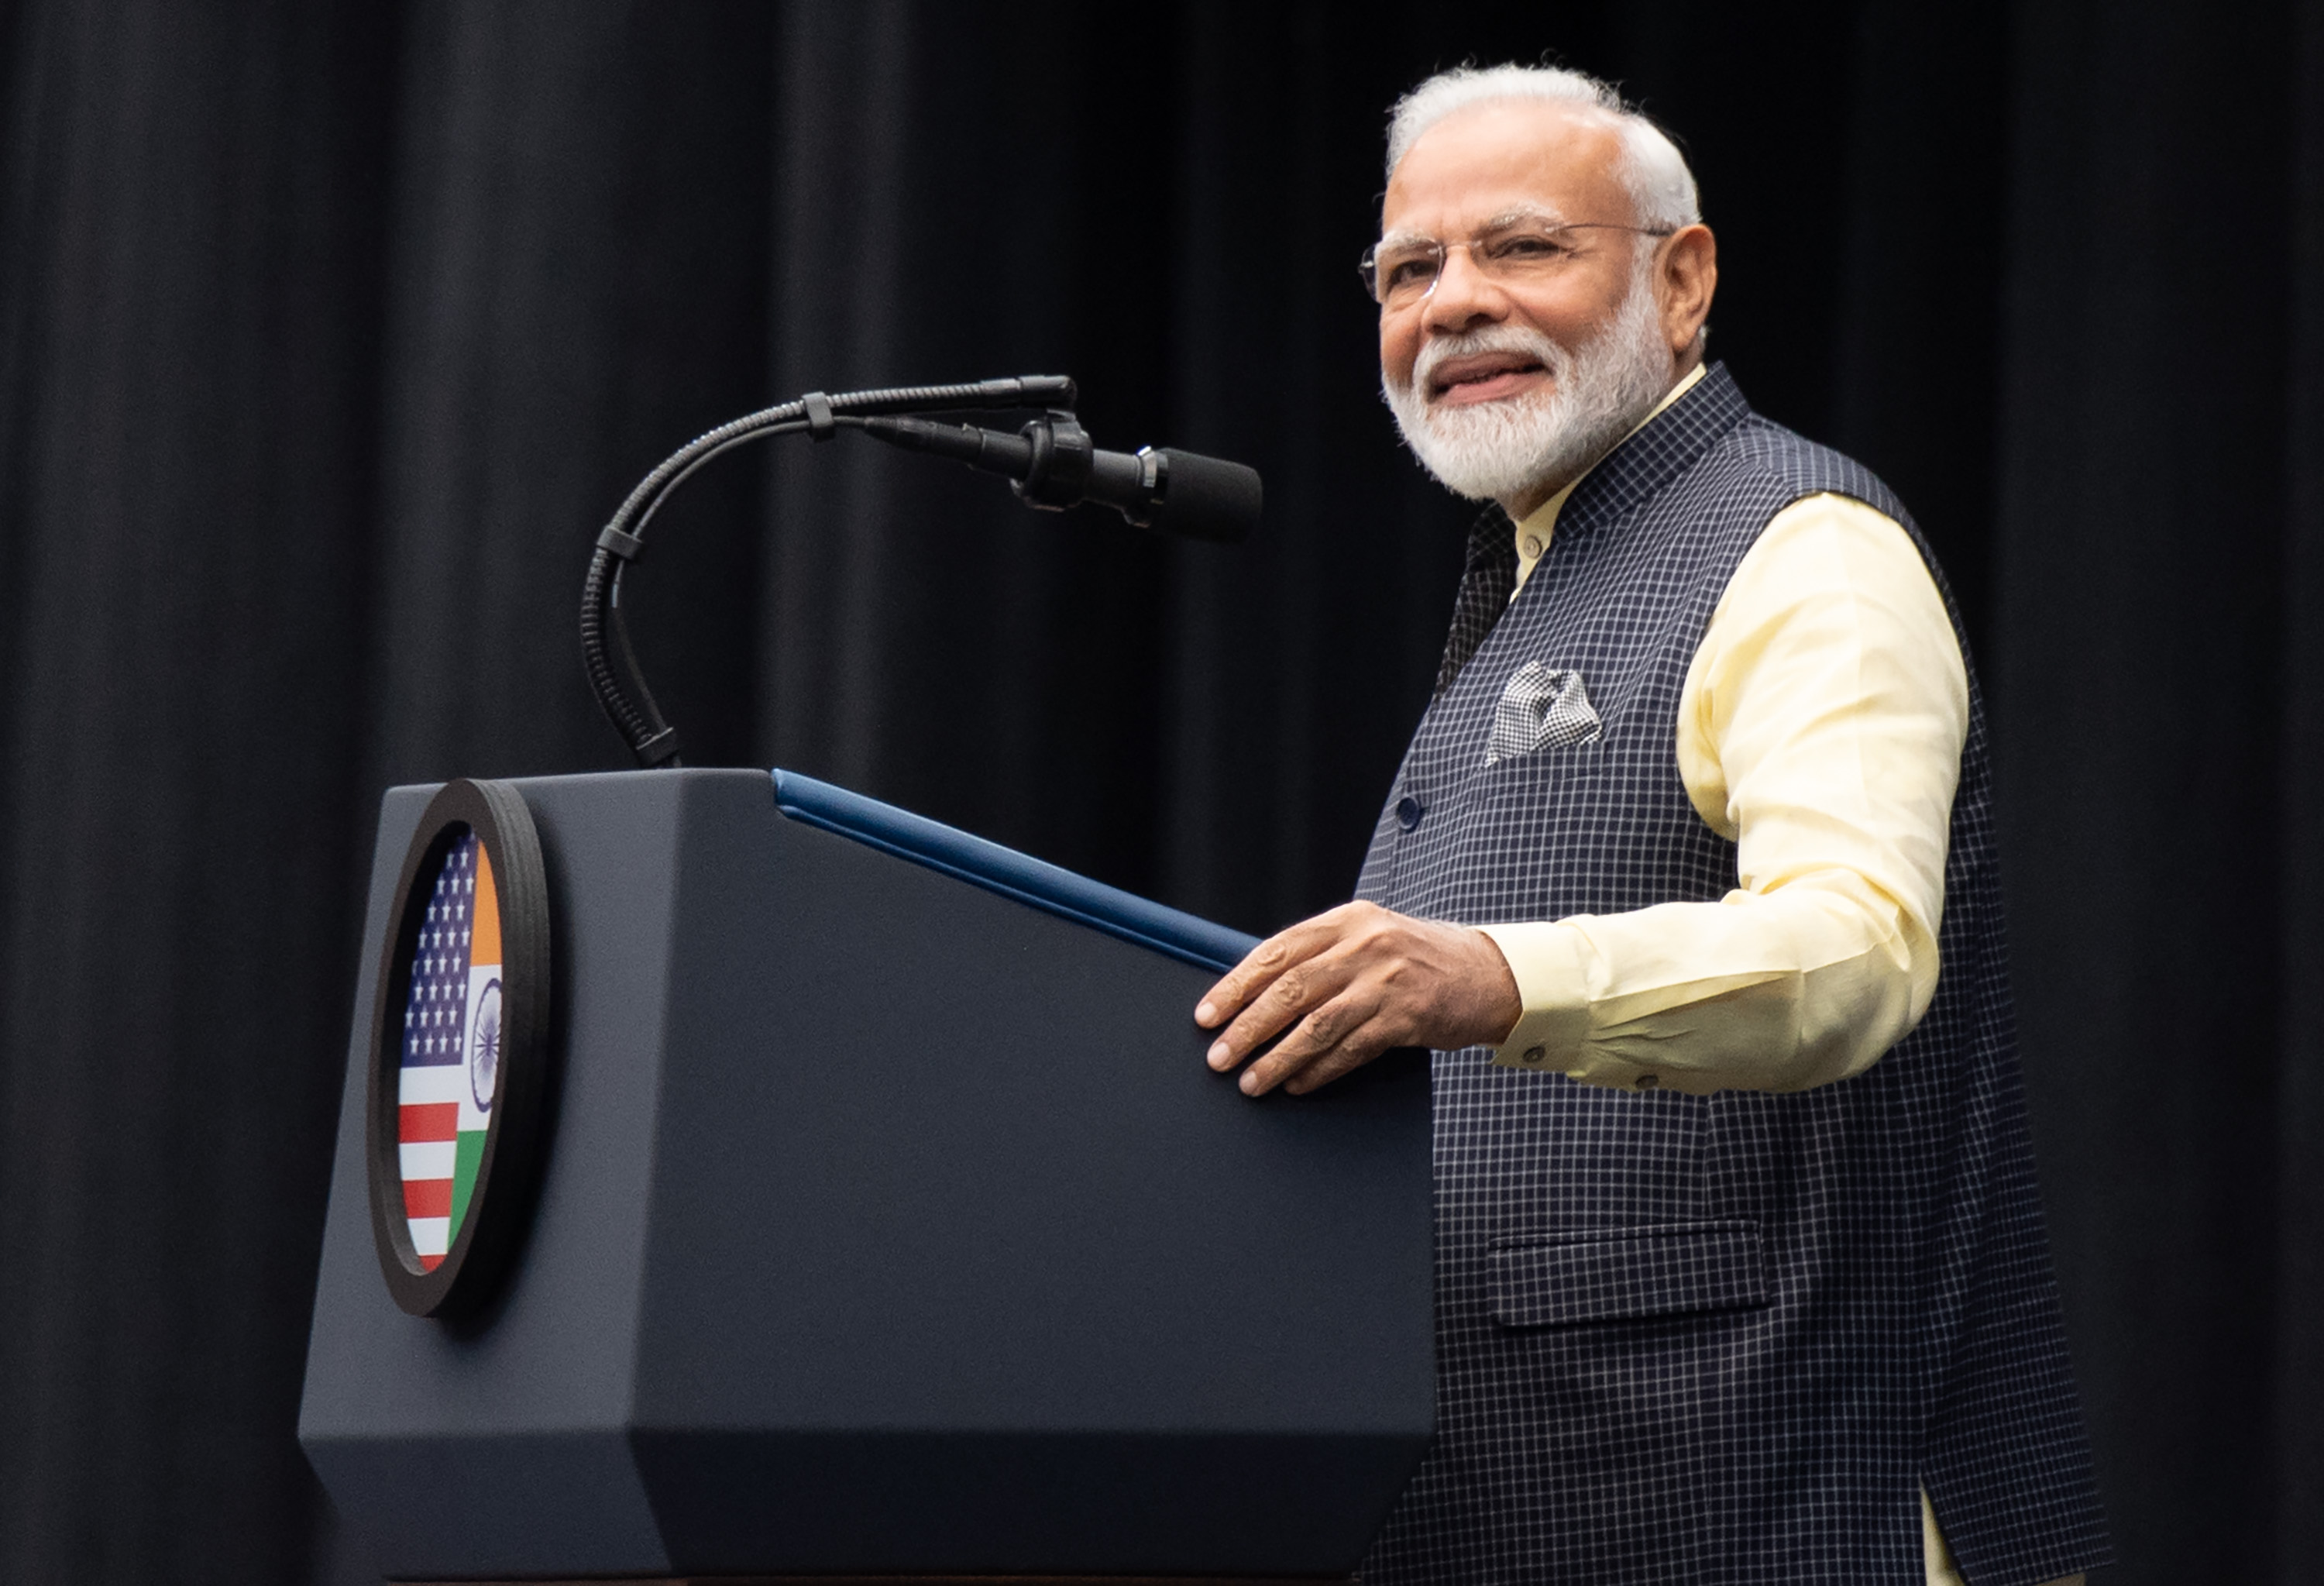 Indian Prime Minister Narendra Modi attend (SAUL LOEB/AFP/Getty Images)